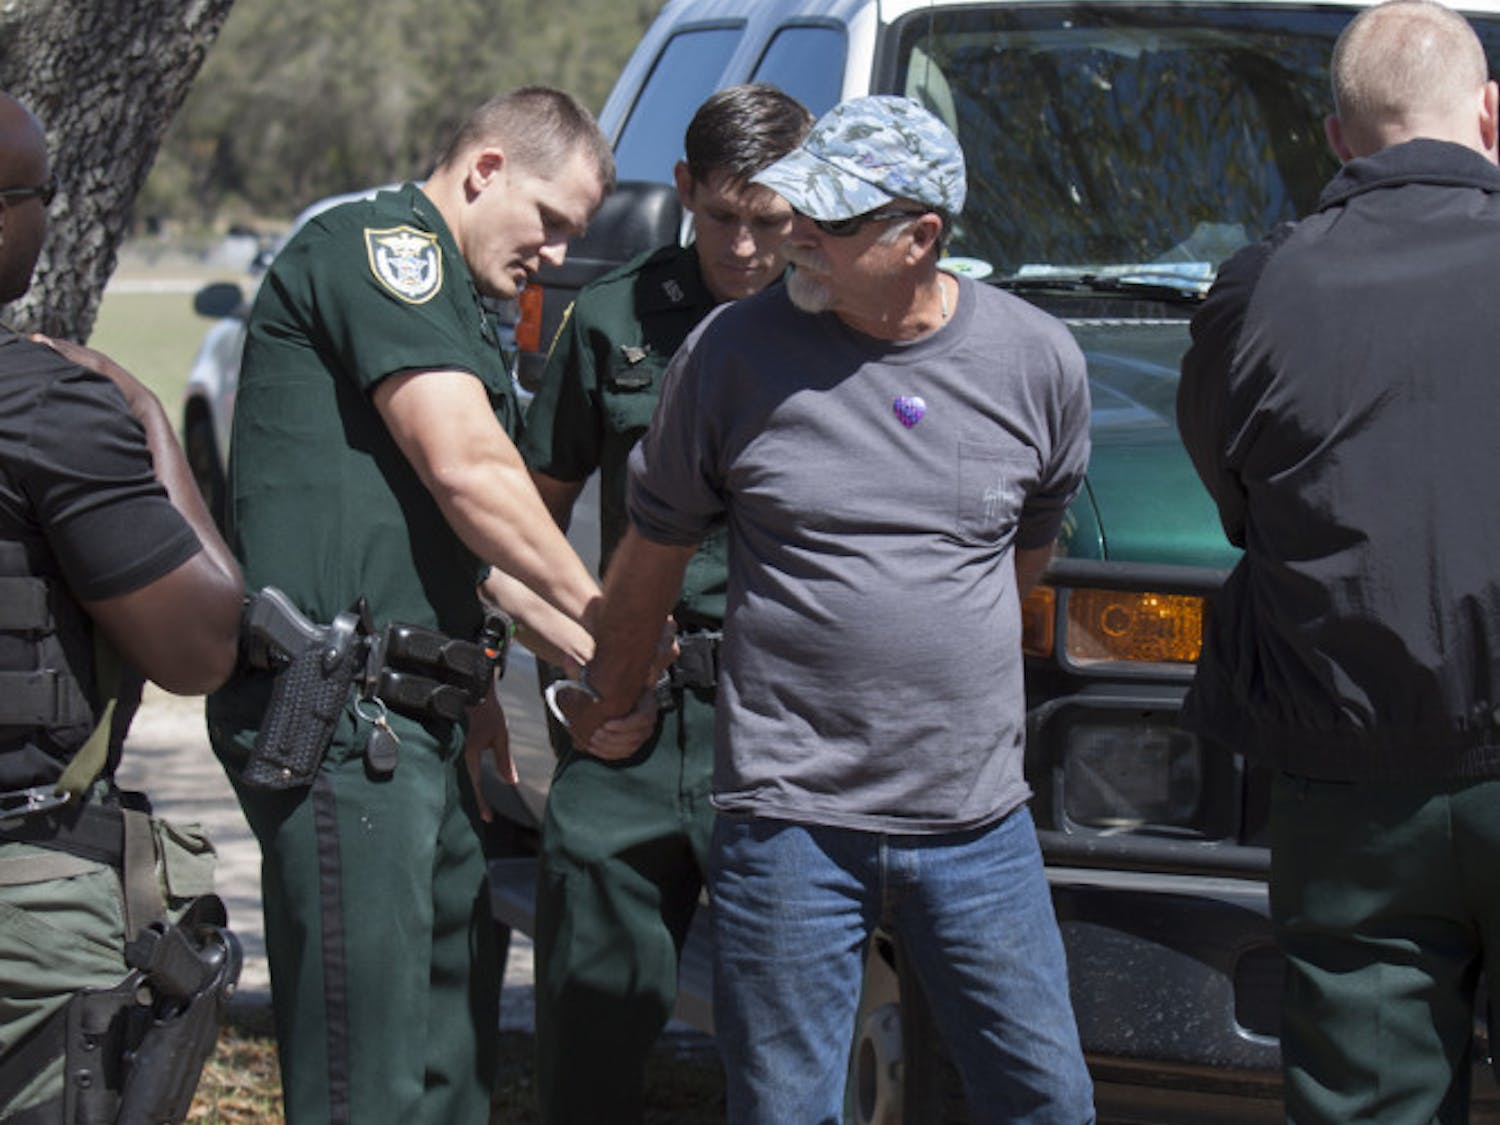 Deputies arrested a man March 4 after he punched a President Donald Trump supporter in the face after an argument outside Countryside Baptist Church. Michael Robert Chriss, 64, punched Charles Duane Webster, 61, as the two joined a crowd of hundreds outside the church, located at 10926 NW 39th Ave. The crowd, primarily protesters, gathered following a town hall meeting with Rep. Ted Yoho in the church. Yoho, a Republican who represents Florida's 3rd Congressional District, which includes Alachua, Clay and Bradford counties and parts of Marion County, answered questions about issues such as Trump's temporary travel ban, health care, LGBTQ+ rights and the alleged ties between the president's administration and Russia. The protesters were not allowed inside the town hall and, instead, chanted and waved signs. - Meryl Kornfield